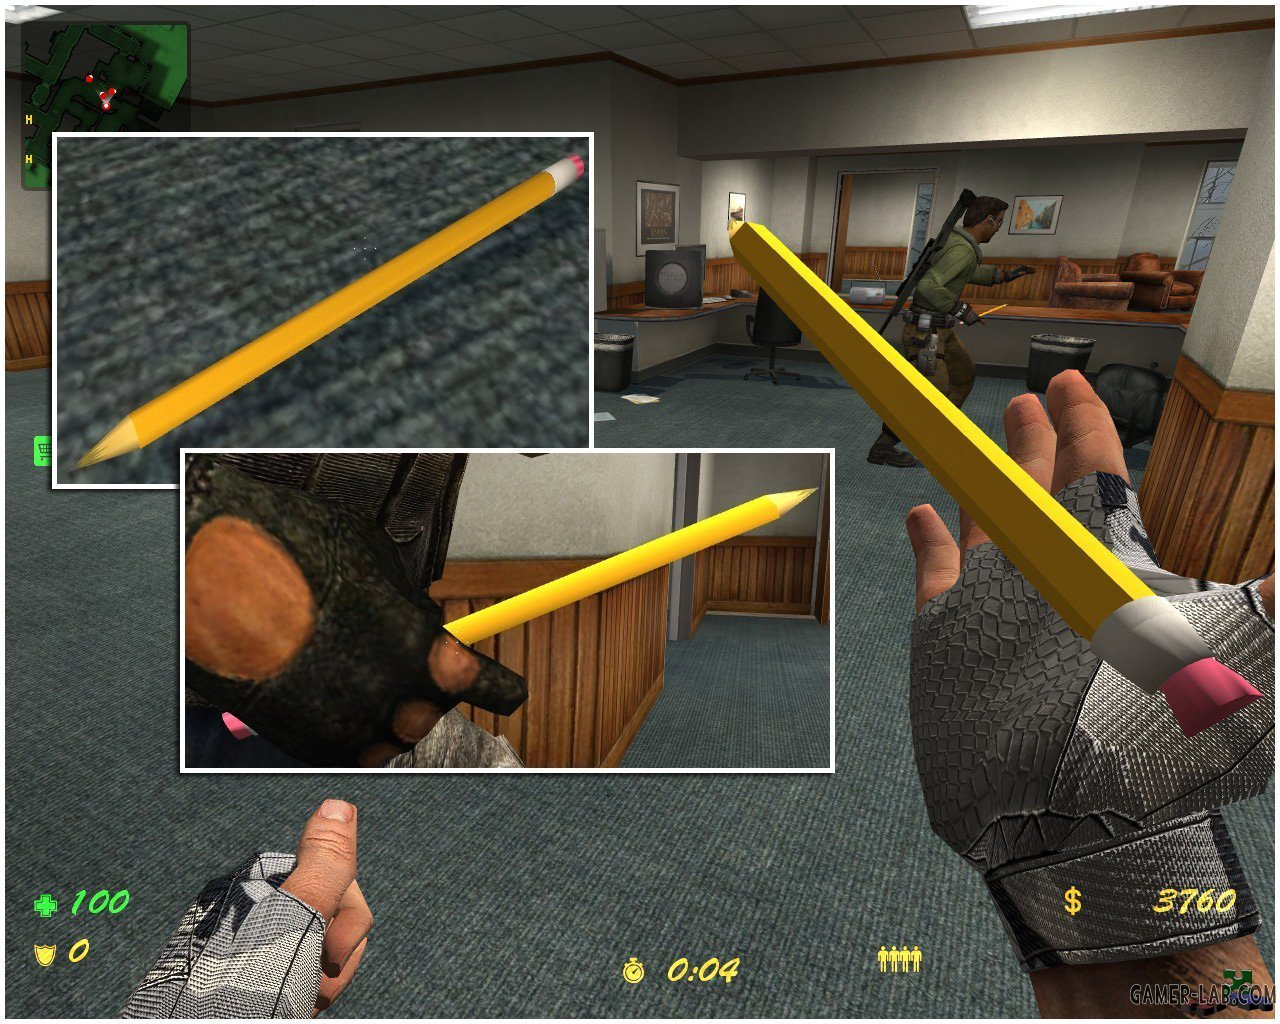 Pencil_Knife